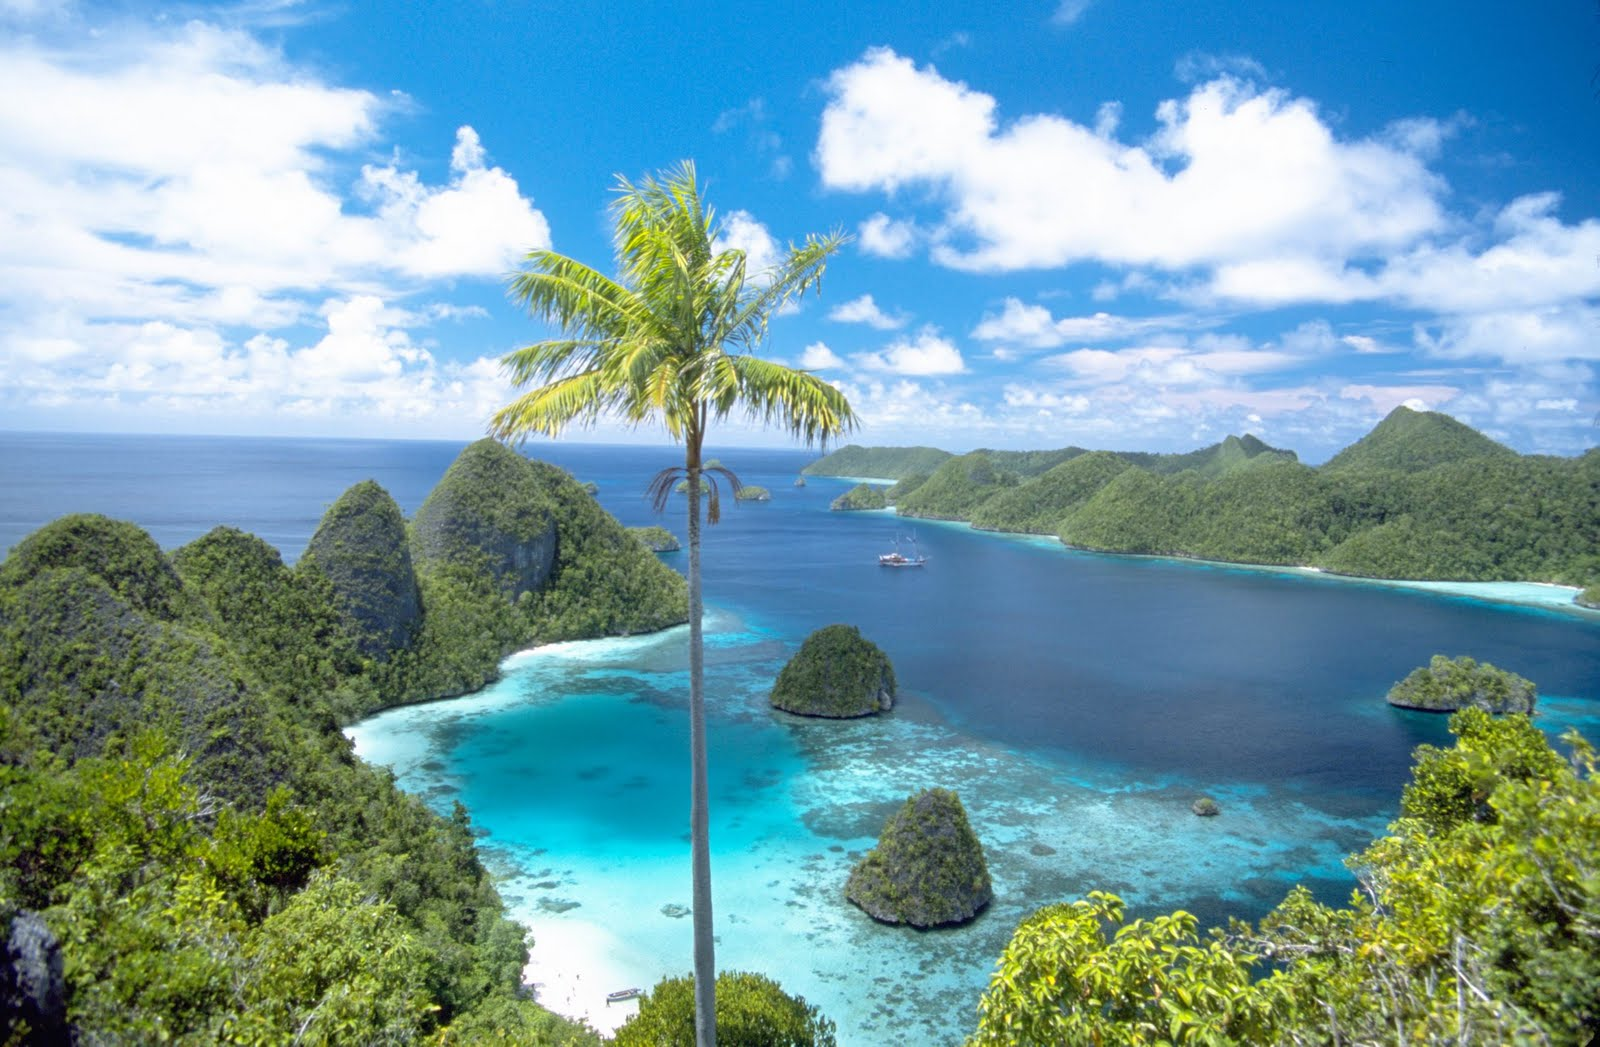 Tourism: Raja Ampat Islands